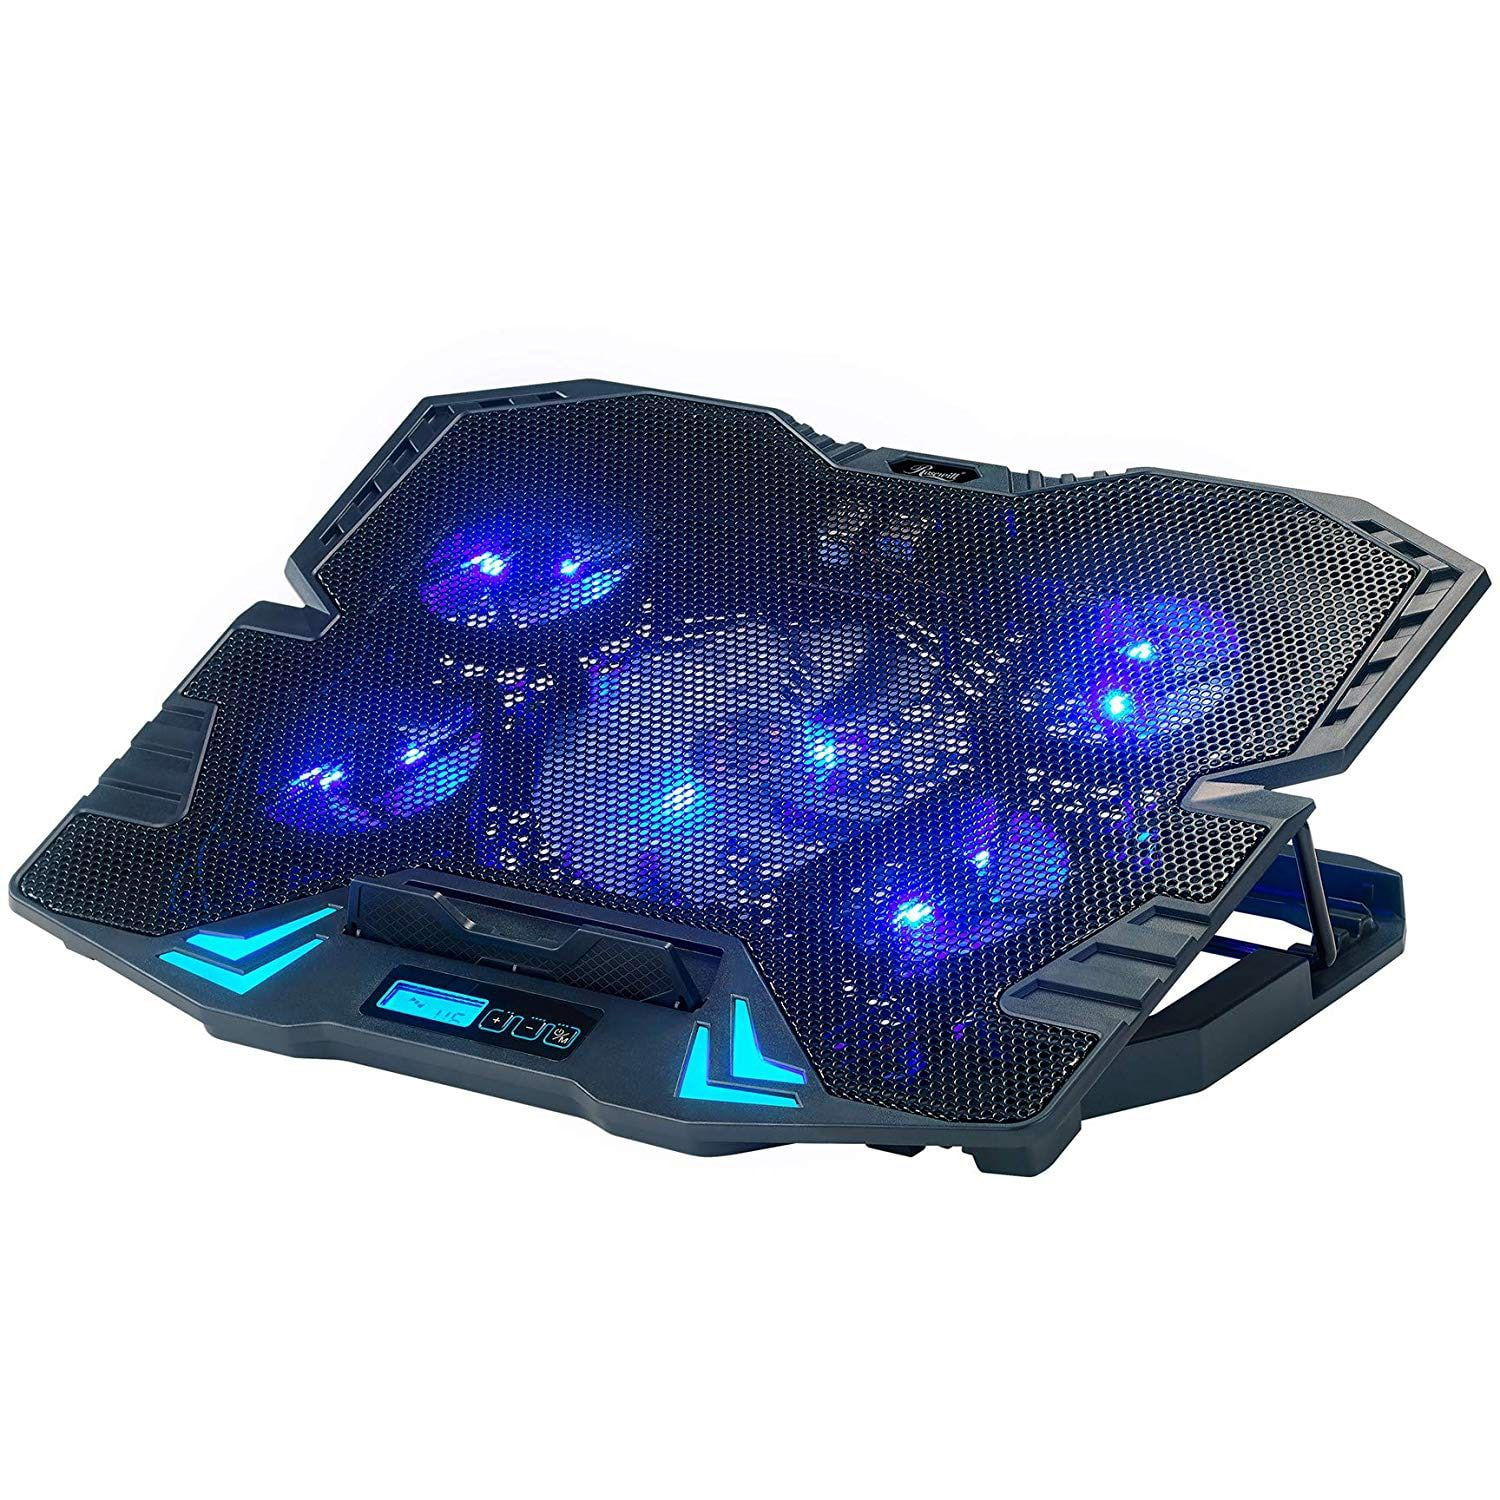 Rosewill Gaming Laptop Cooler Notebook Cooling Pad Laptop